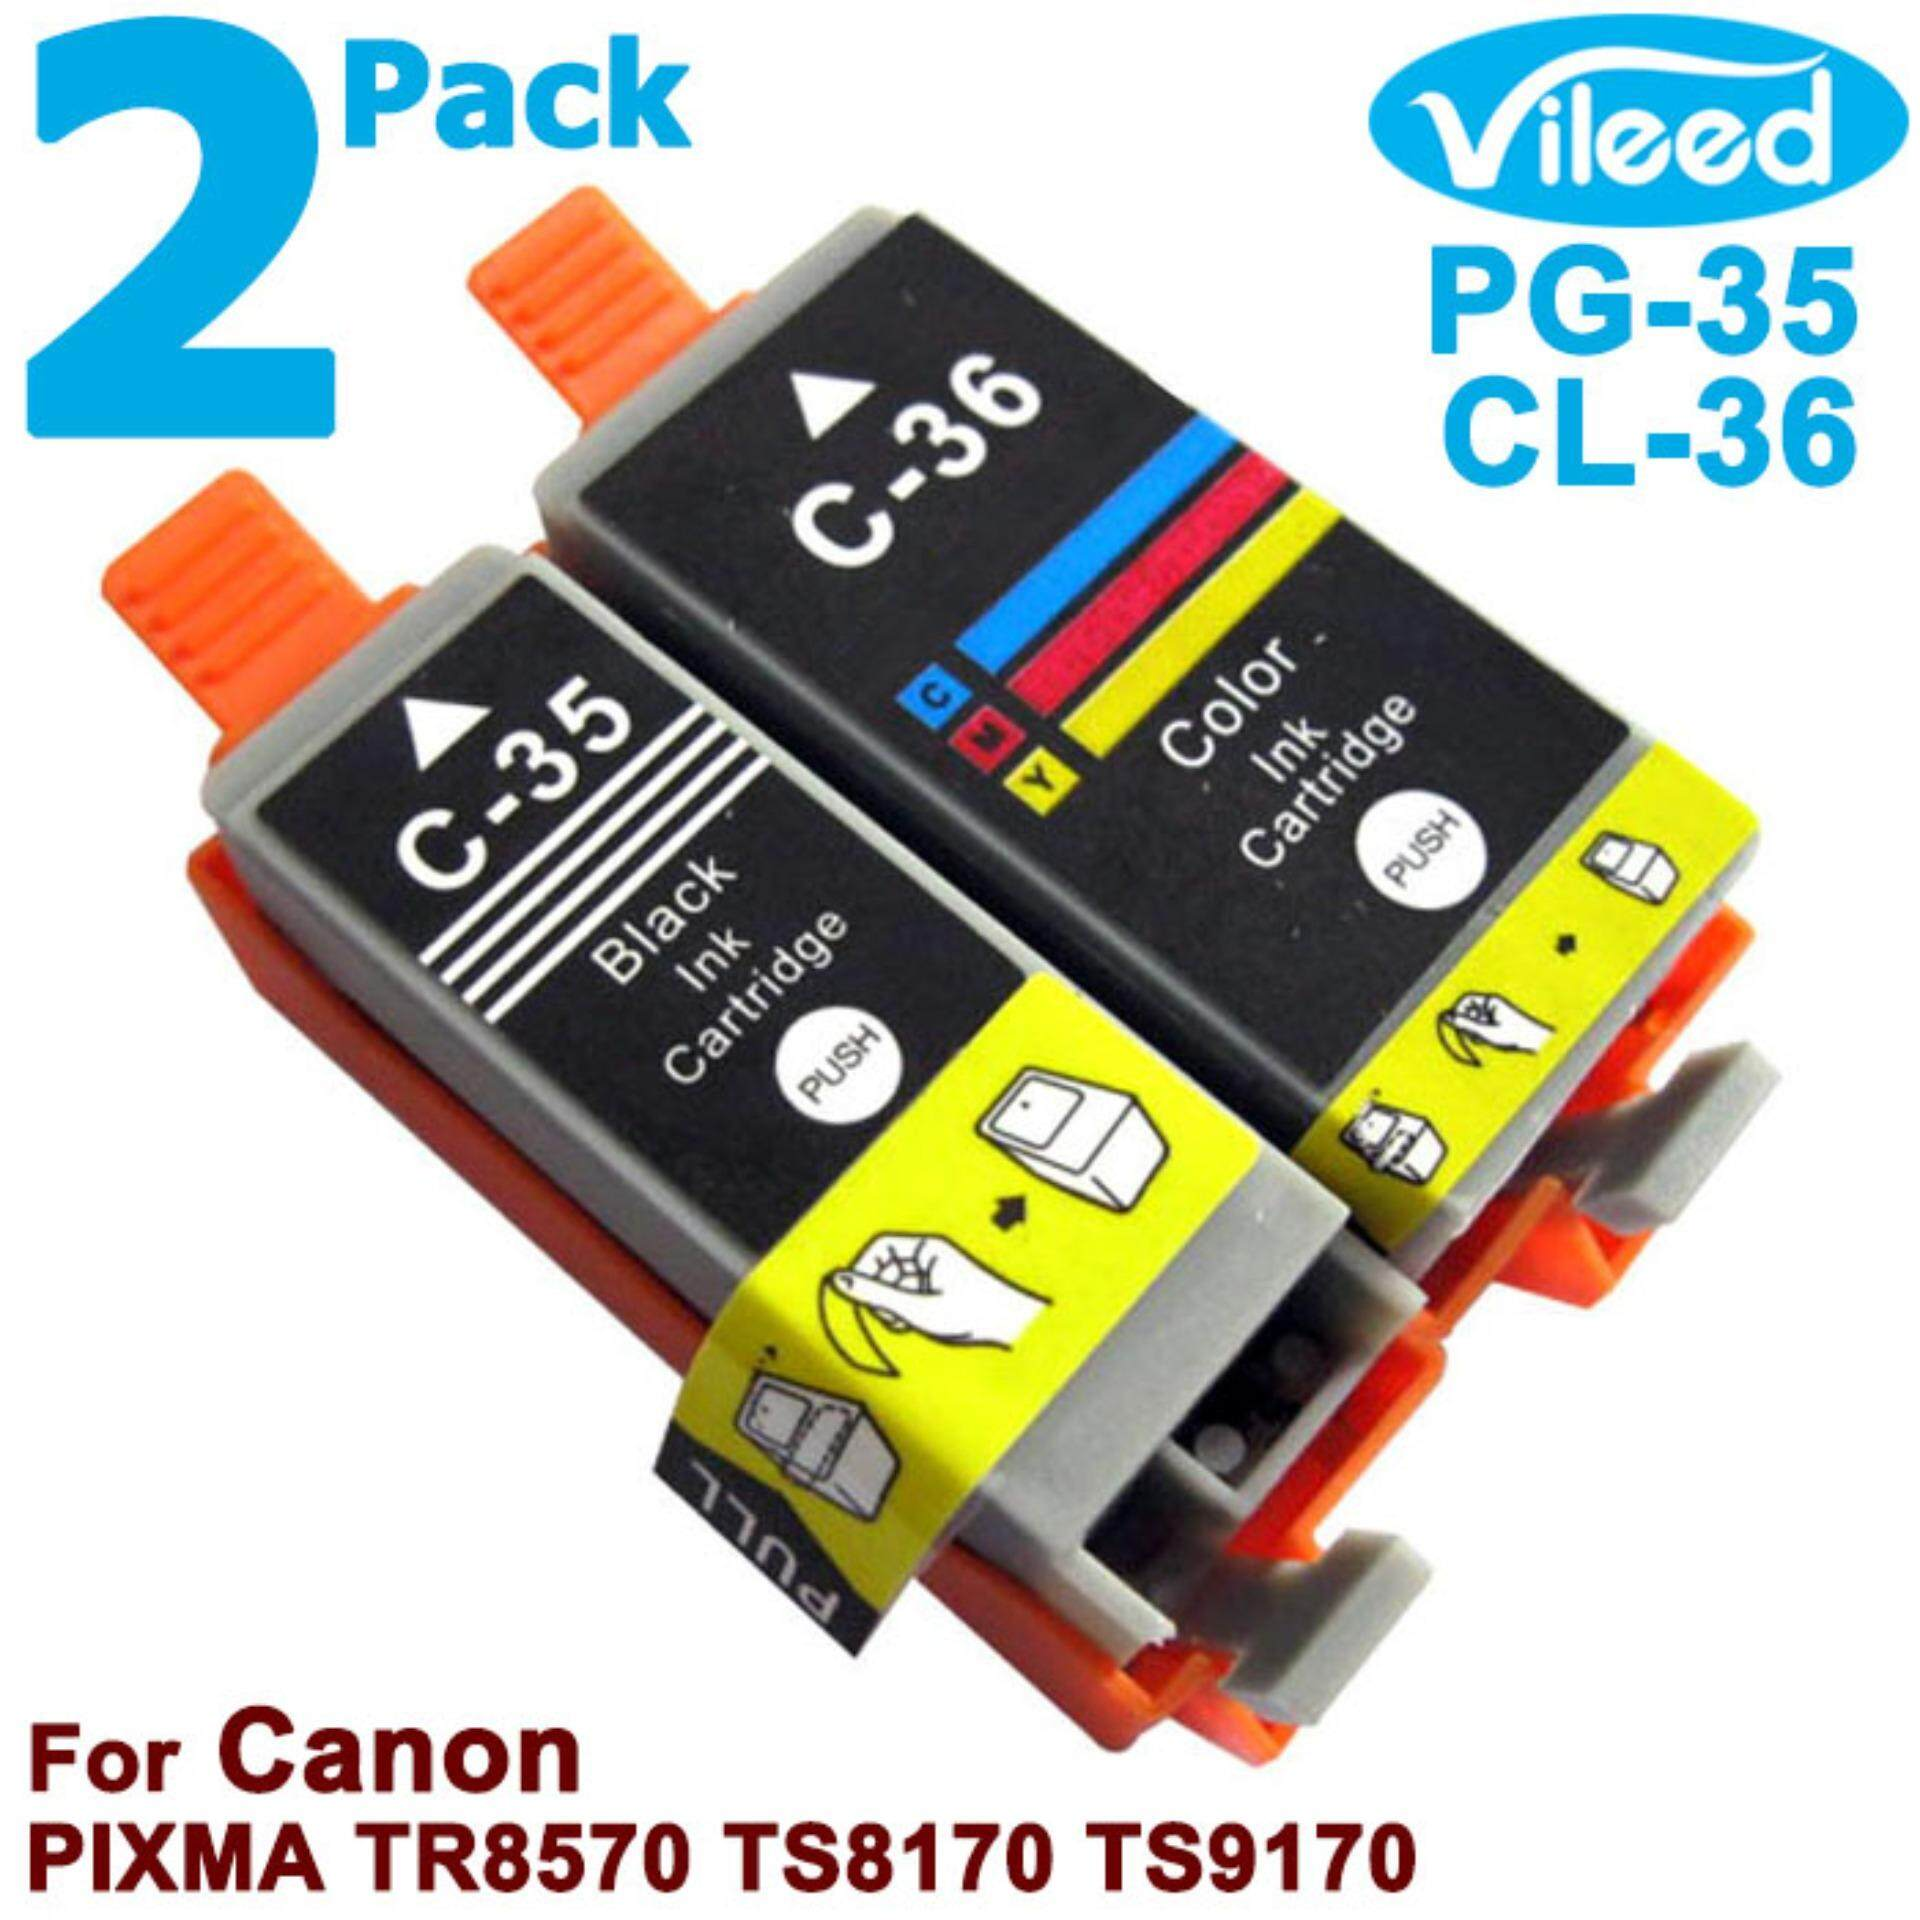 Buy Sell Cheapest Full Ink Cartridge Best Quality Product Deals Canon Cli 751 Yellow Xl Vileed 2 Pack Pg 35 Bk Cl 36 C For Combo Set Print Pg35 Black Cl36 Tri Color Replacement Inkjet